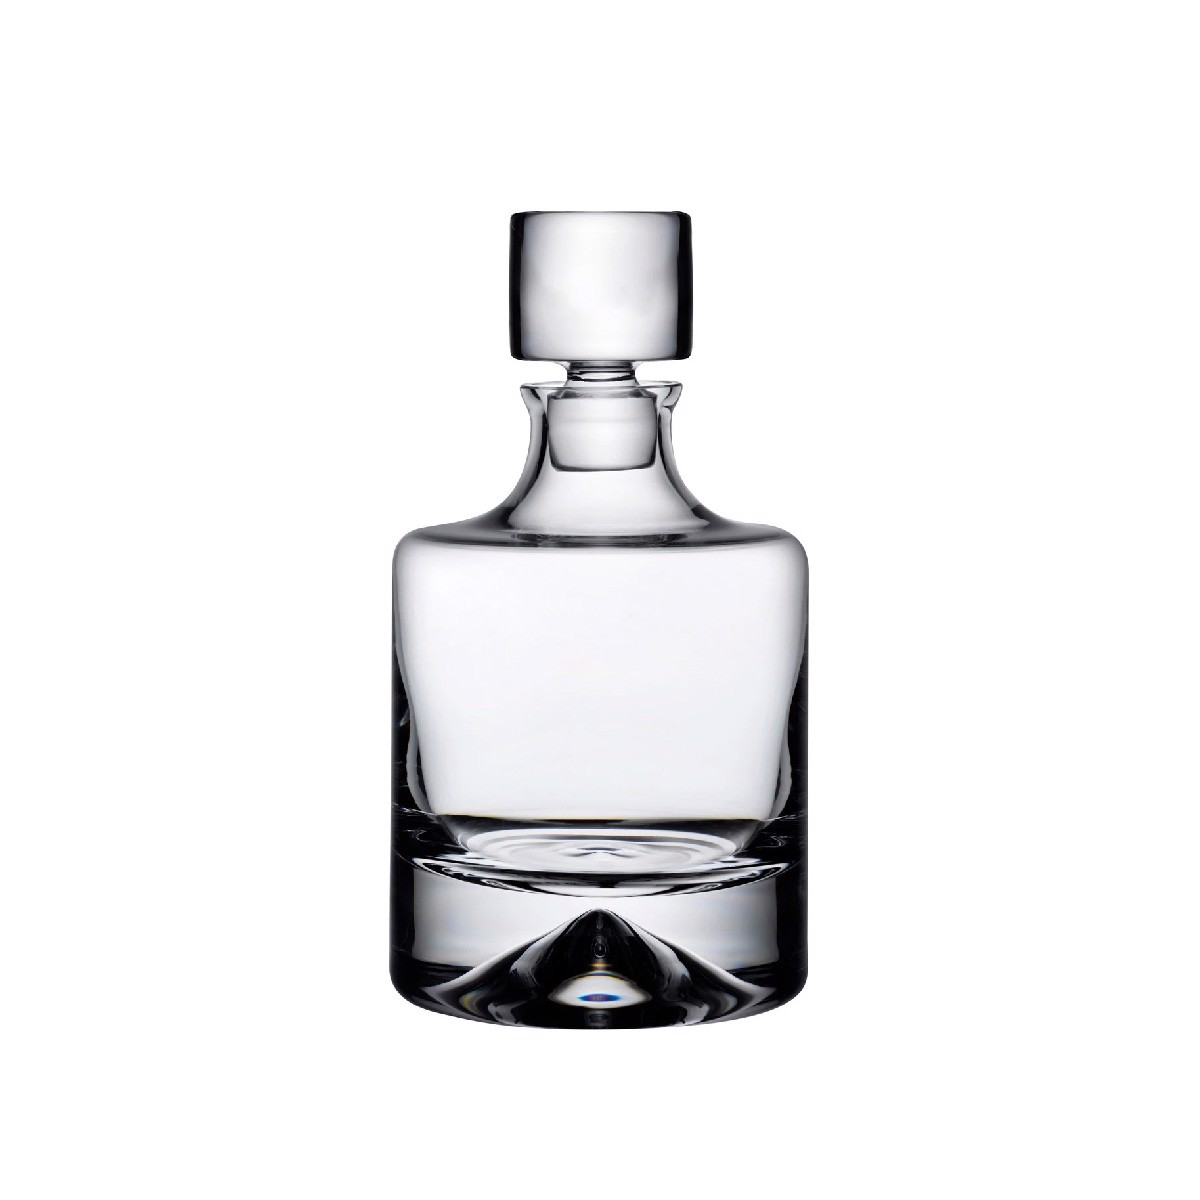 NUDE - Whiskey decanter